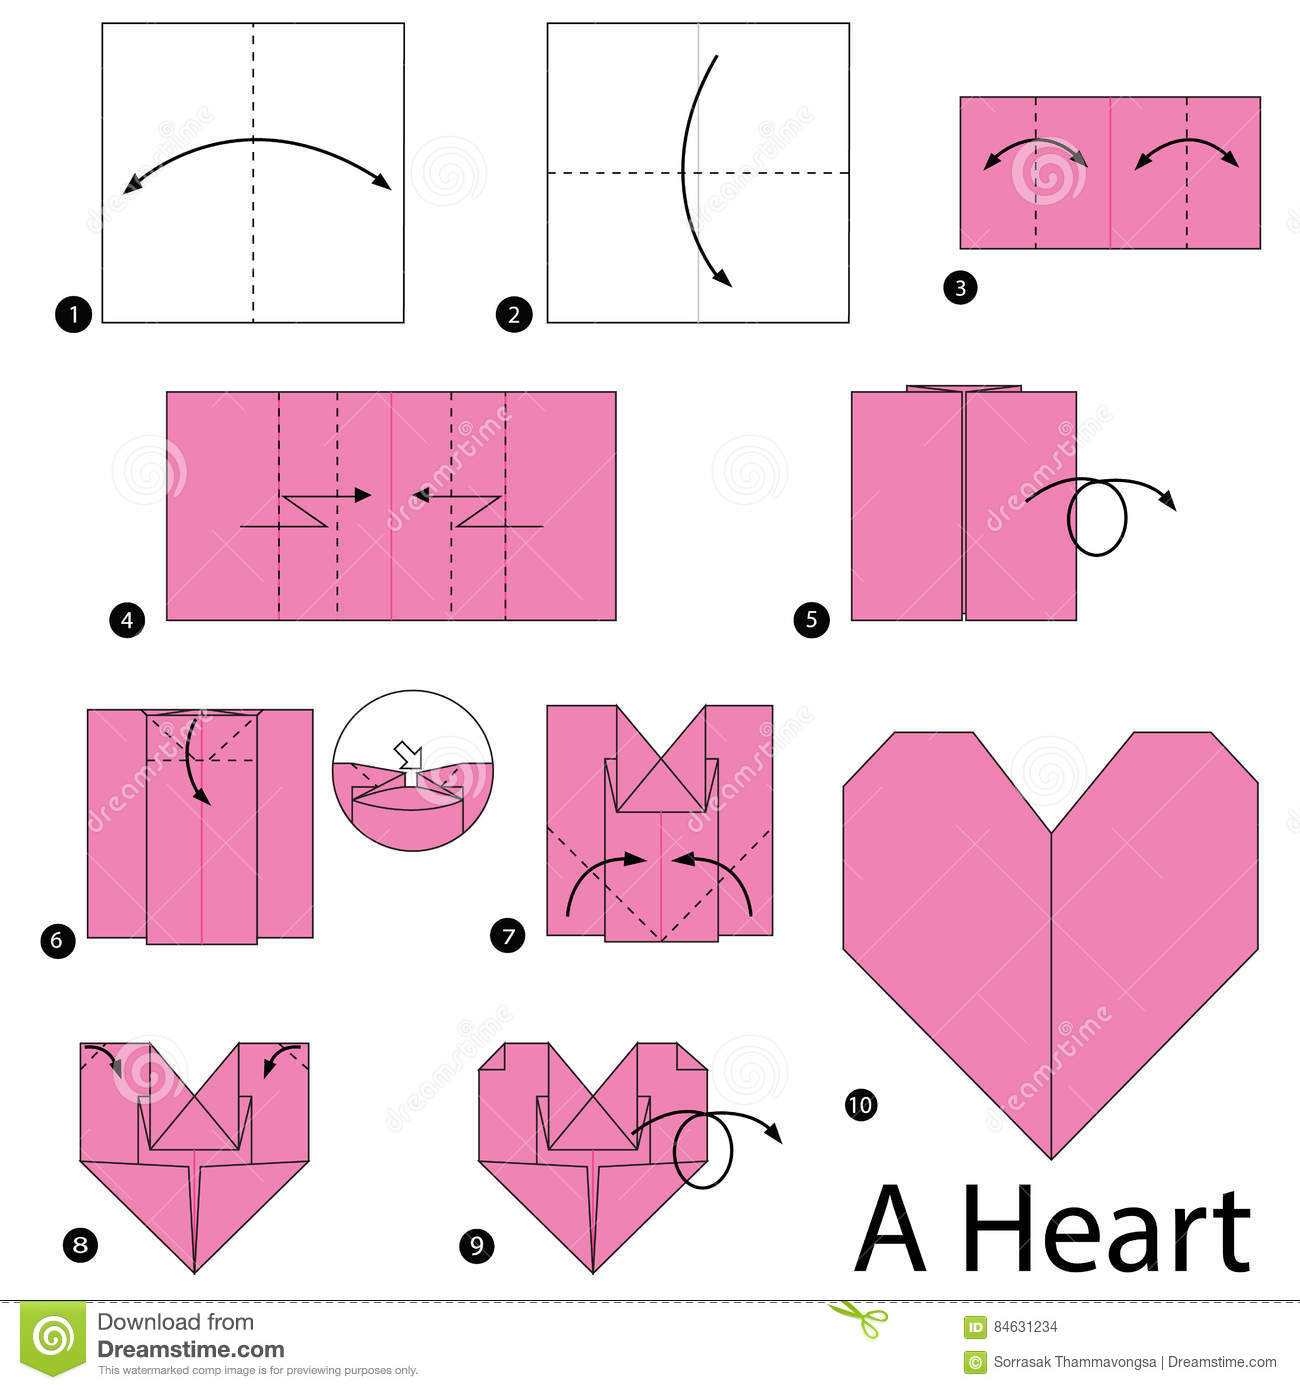 Origami Heart Pocket Instructions | Free Printable Papercraft ... | 1390x1300